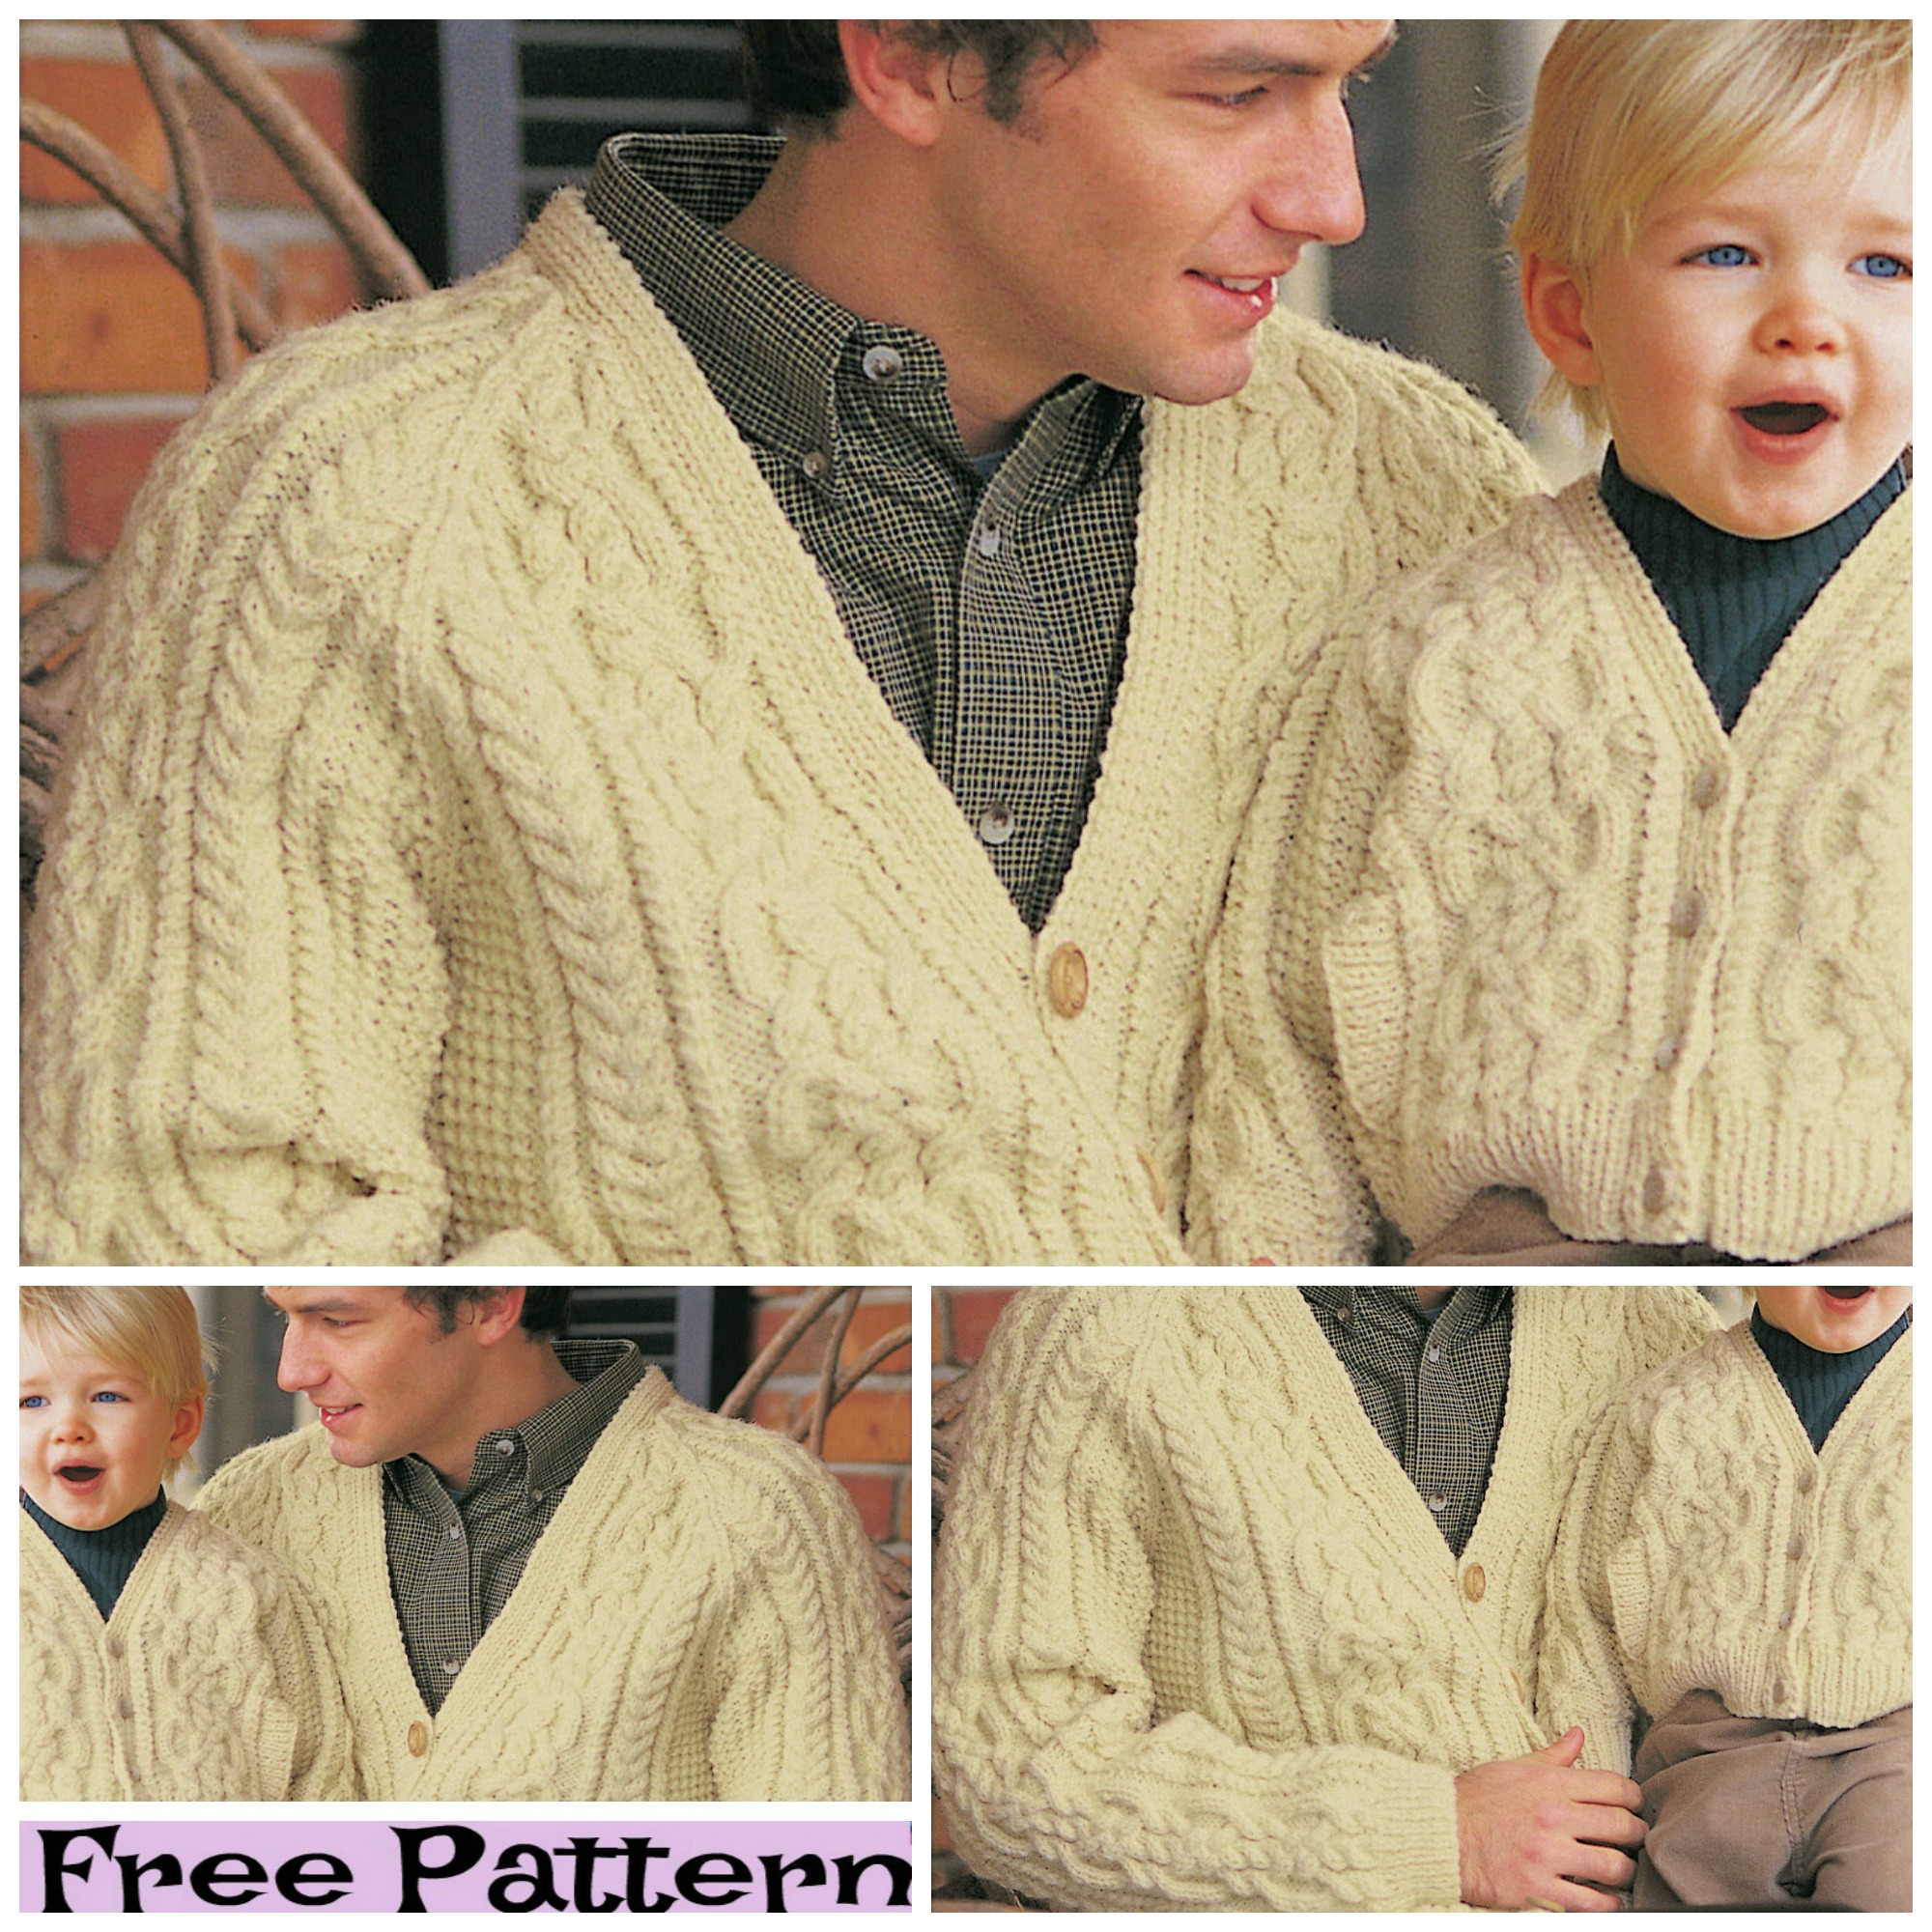 diy4everUnique Knit Family Look - Free Patterns